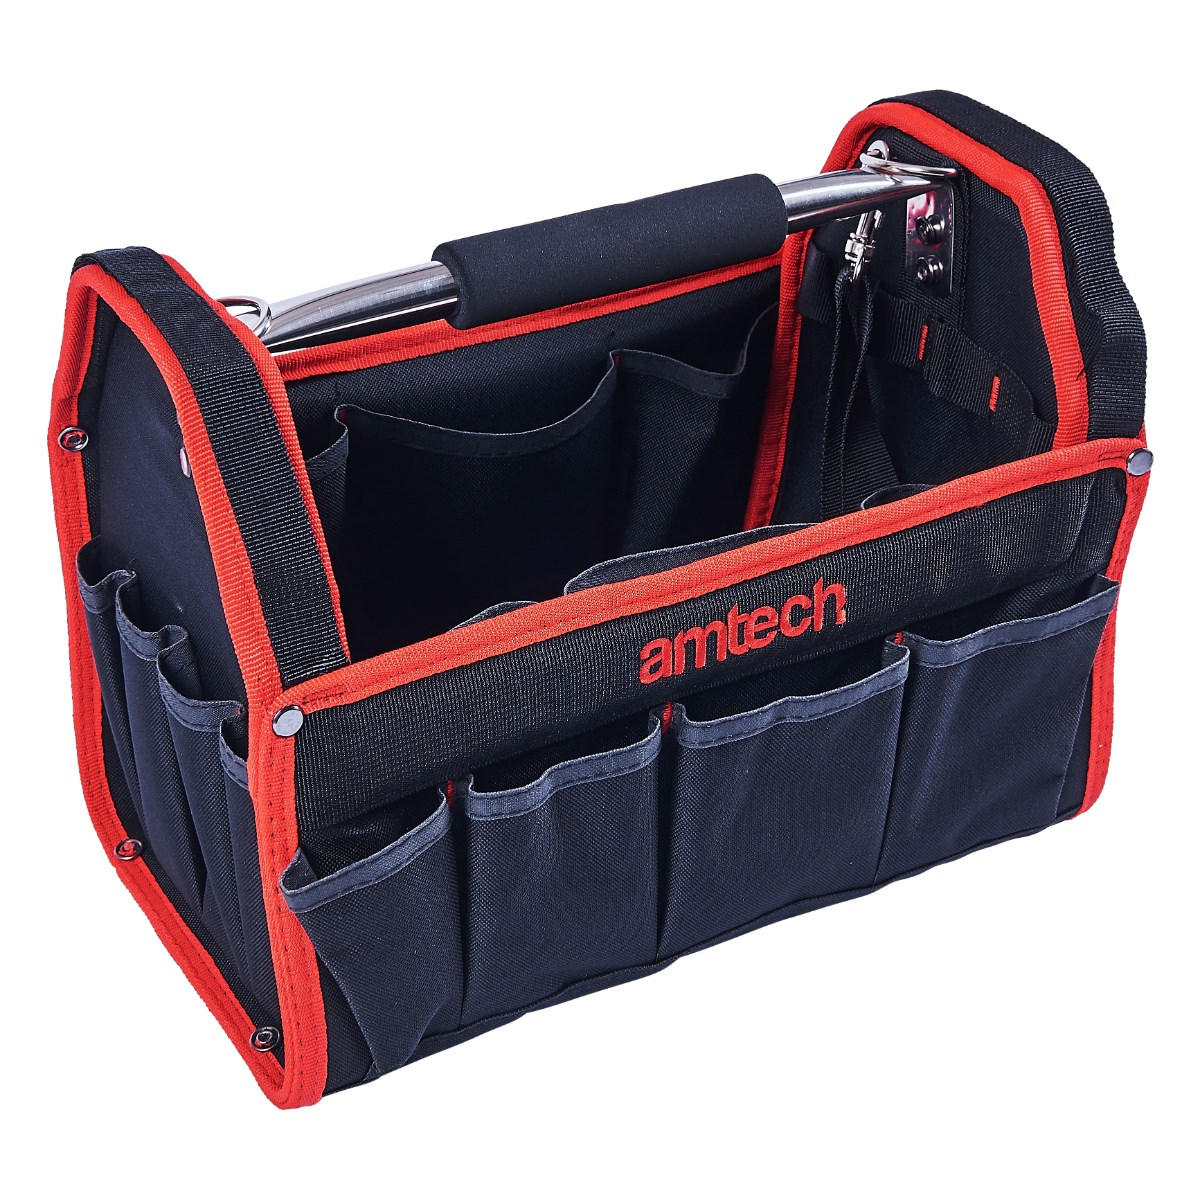 Image of 330mm (13″) tool caddy holdall